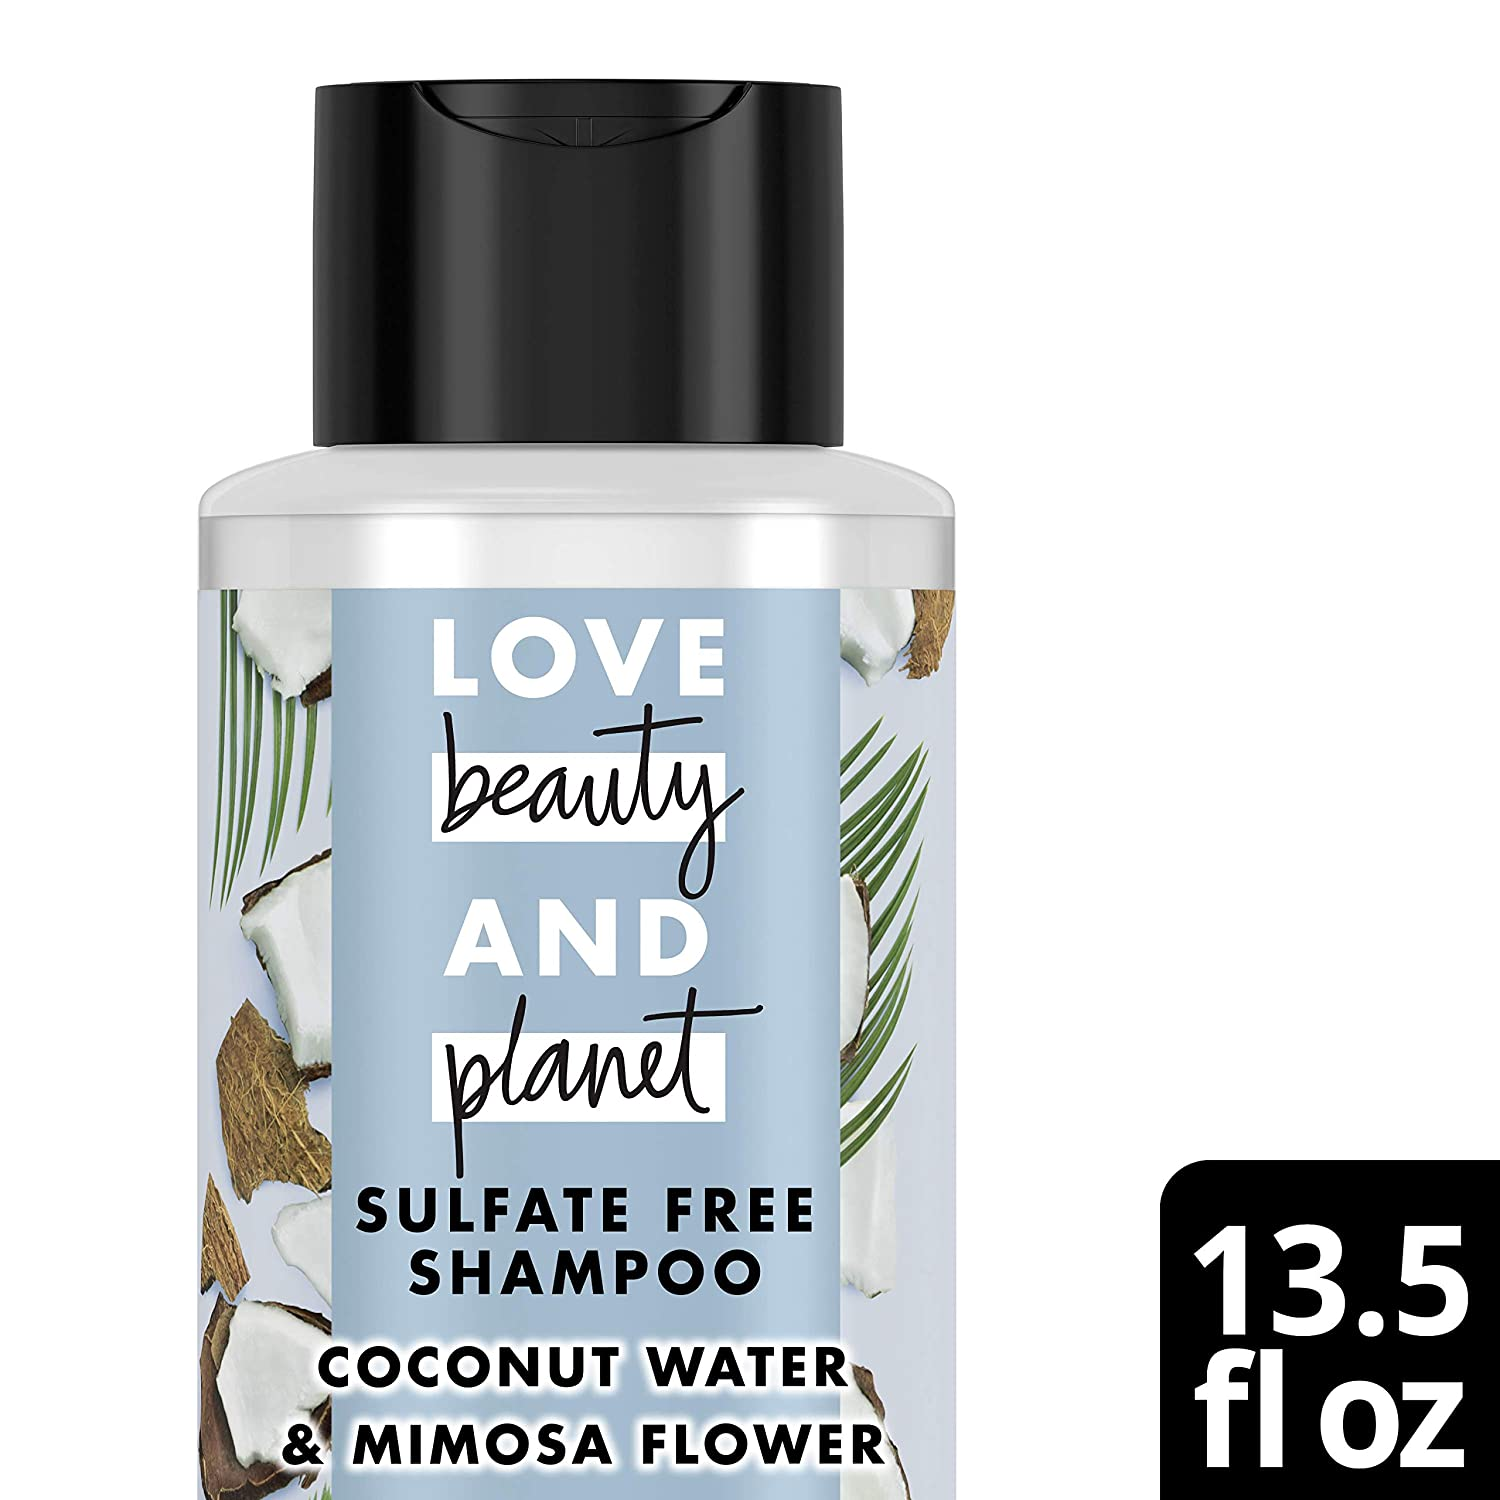 Love Beauty and Planet Volume and Bounty Shampoo, Coconut Water & Mimosa Flower, 13.5 oz